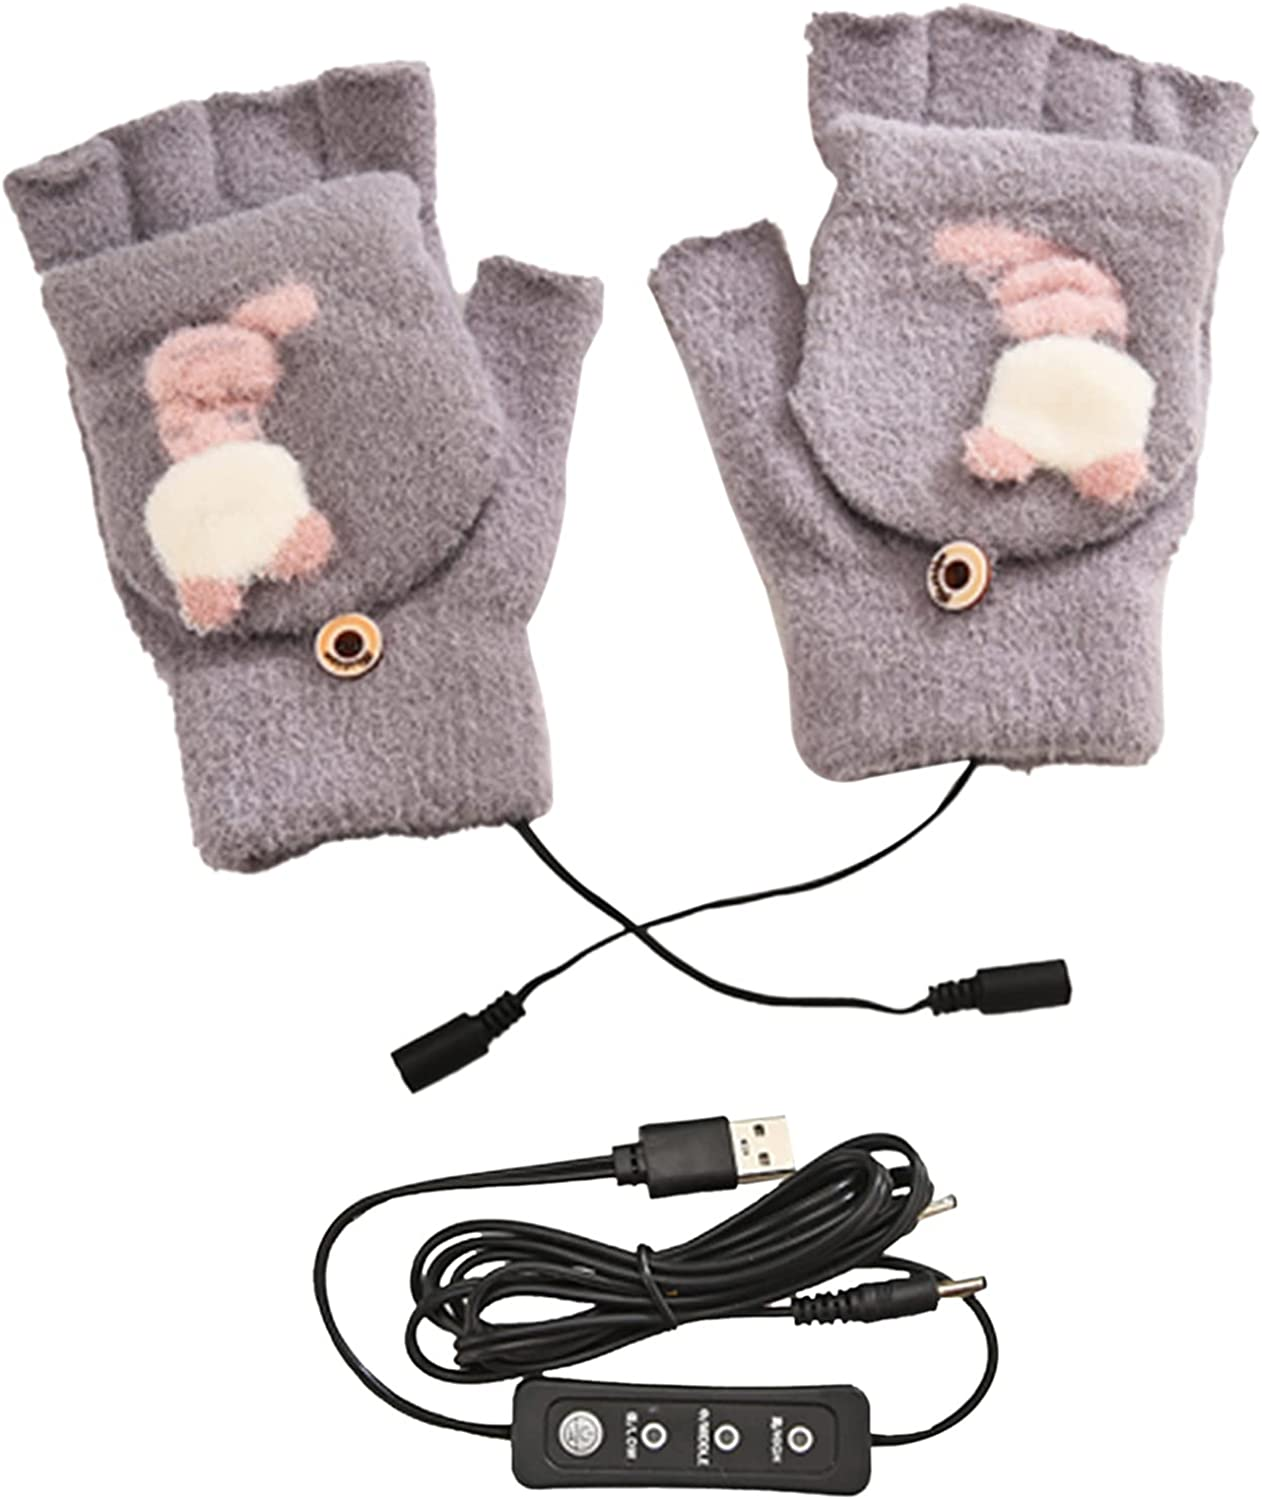 Leyeet Women USB Heated Gloves Winter Dog Electric Heated Gloves Fingerless Mitten with Finger Cover, Black